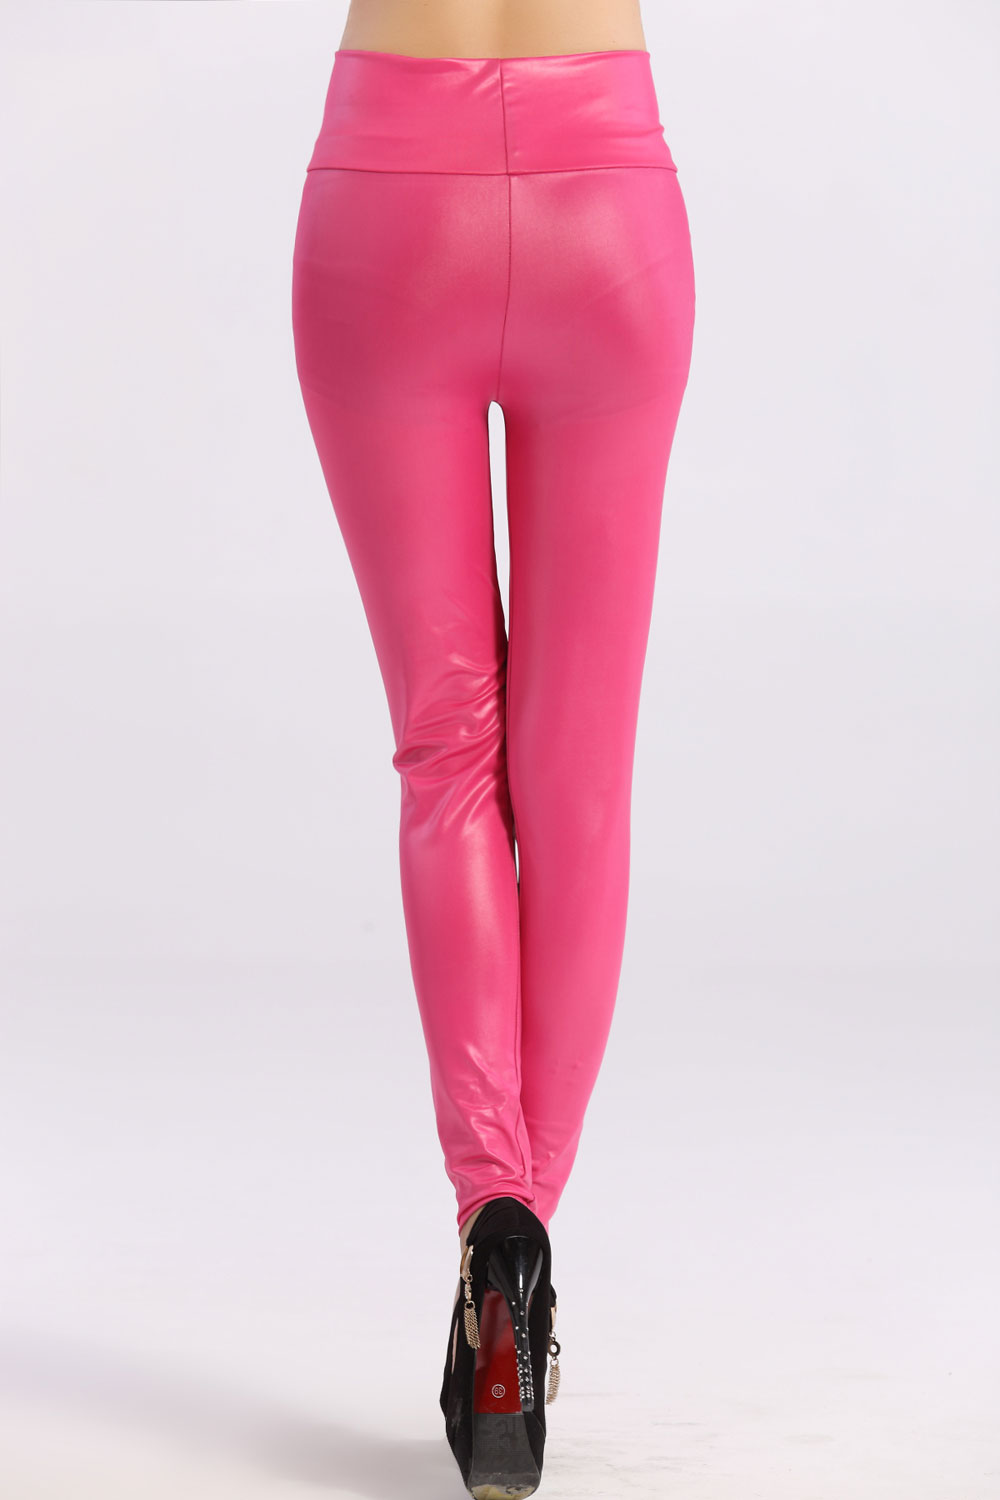 dirt cheap 2019 best official site Pink Pleather Leggings with Zip